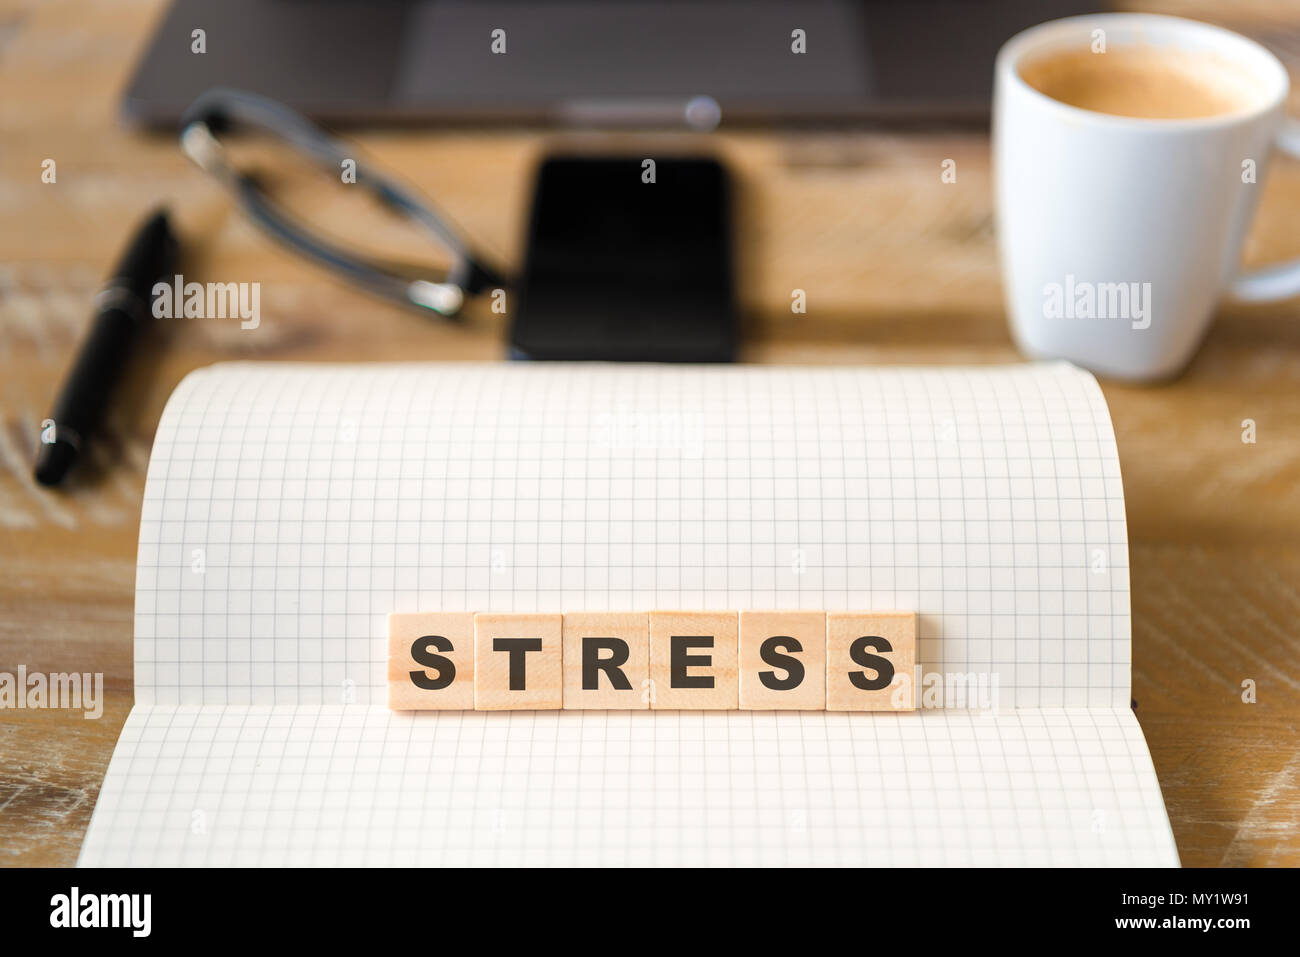 Closeup on notebook over wood table background, focus on wooden blocks with letters making Stress text. - Stock Image